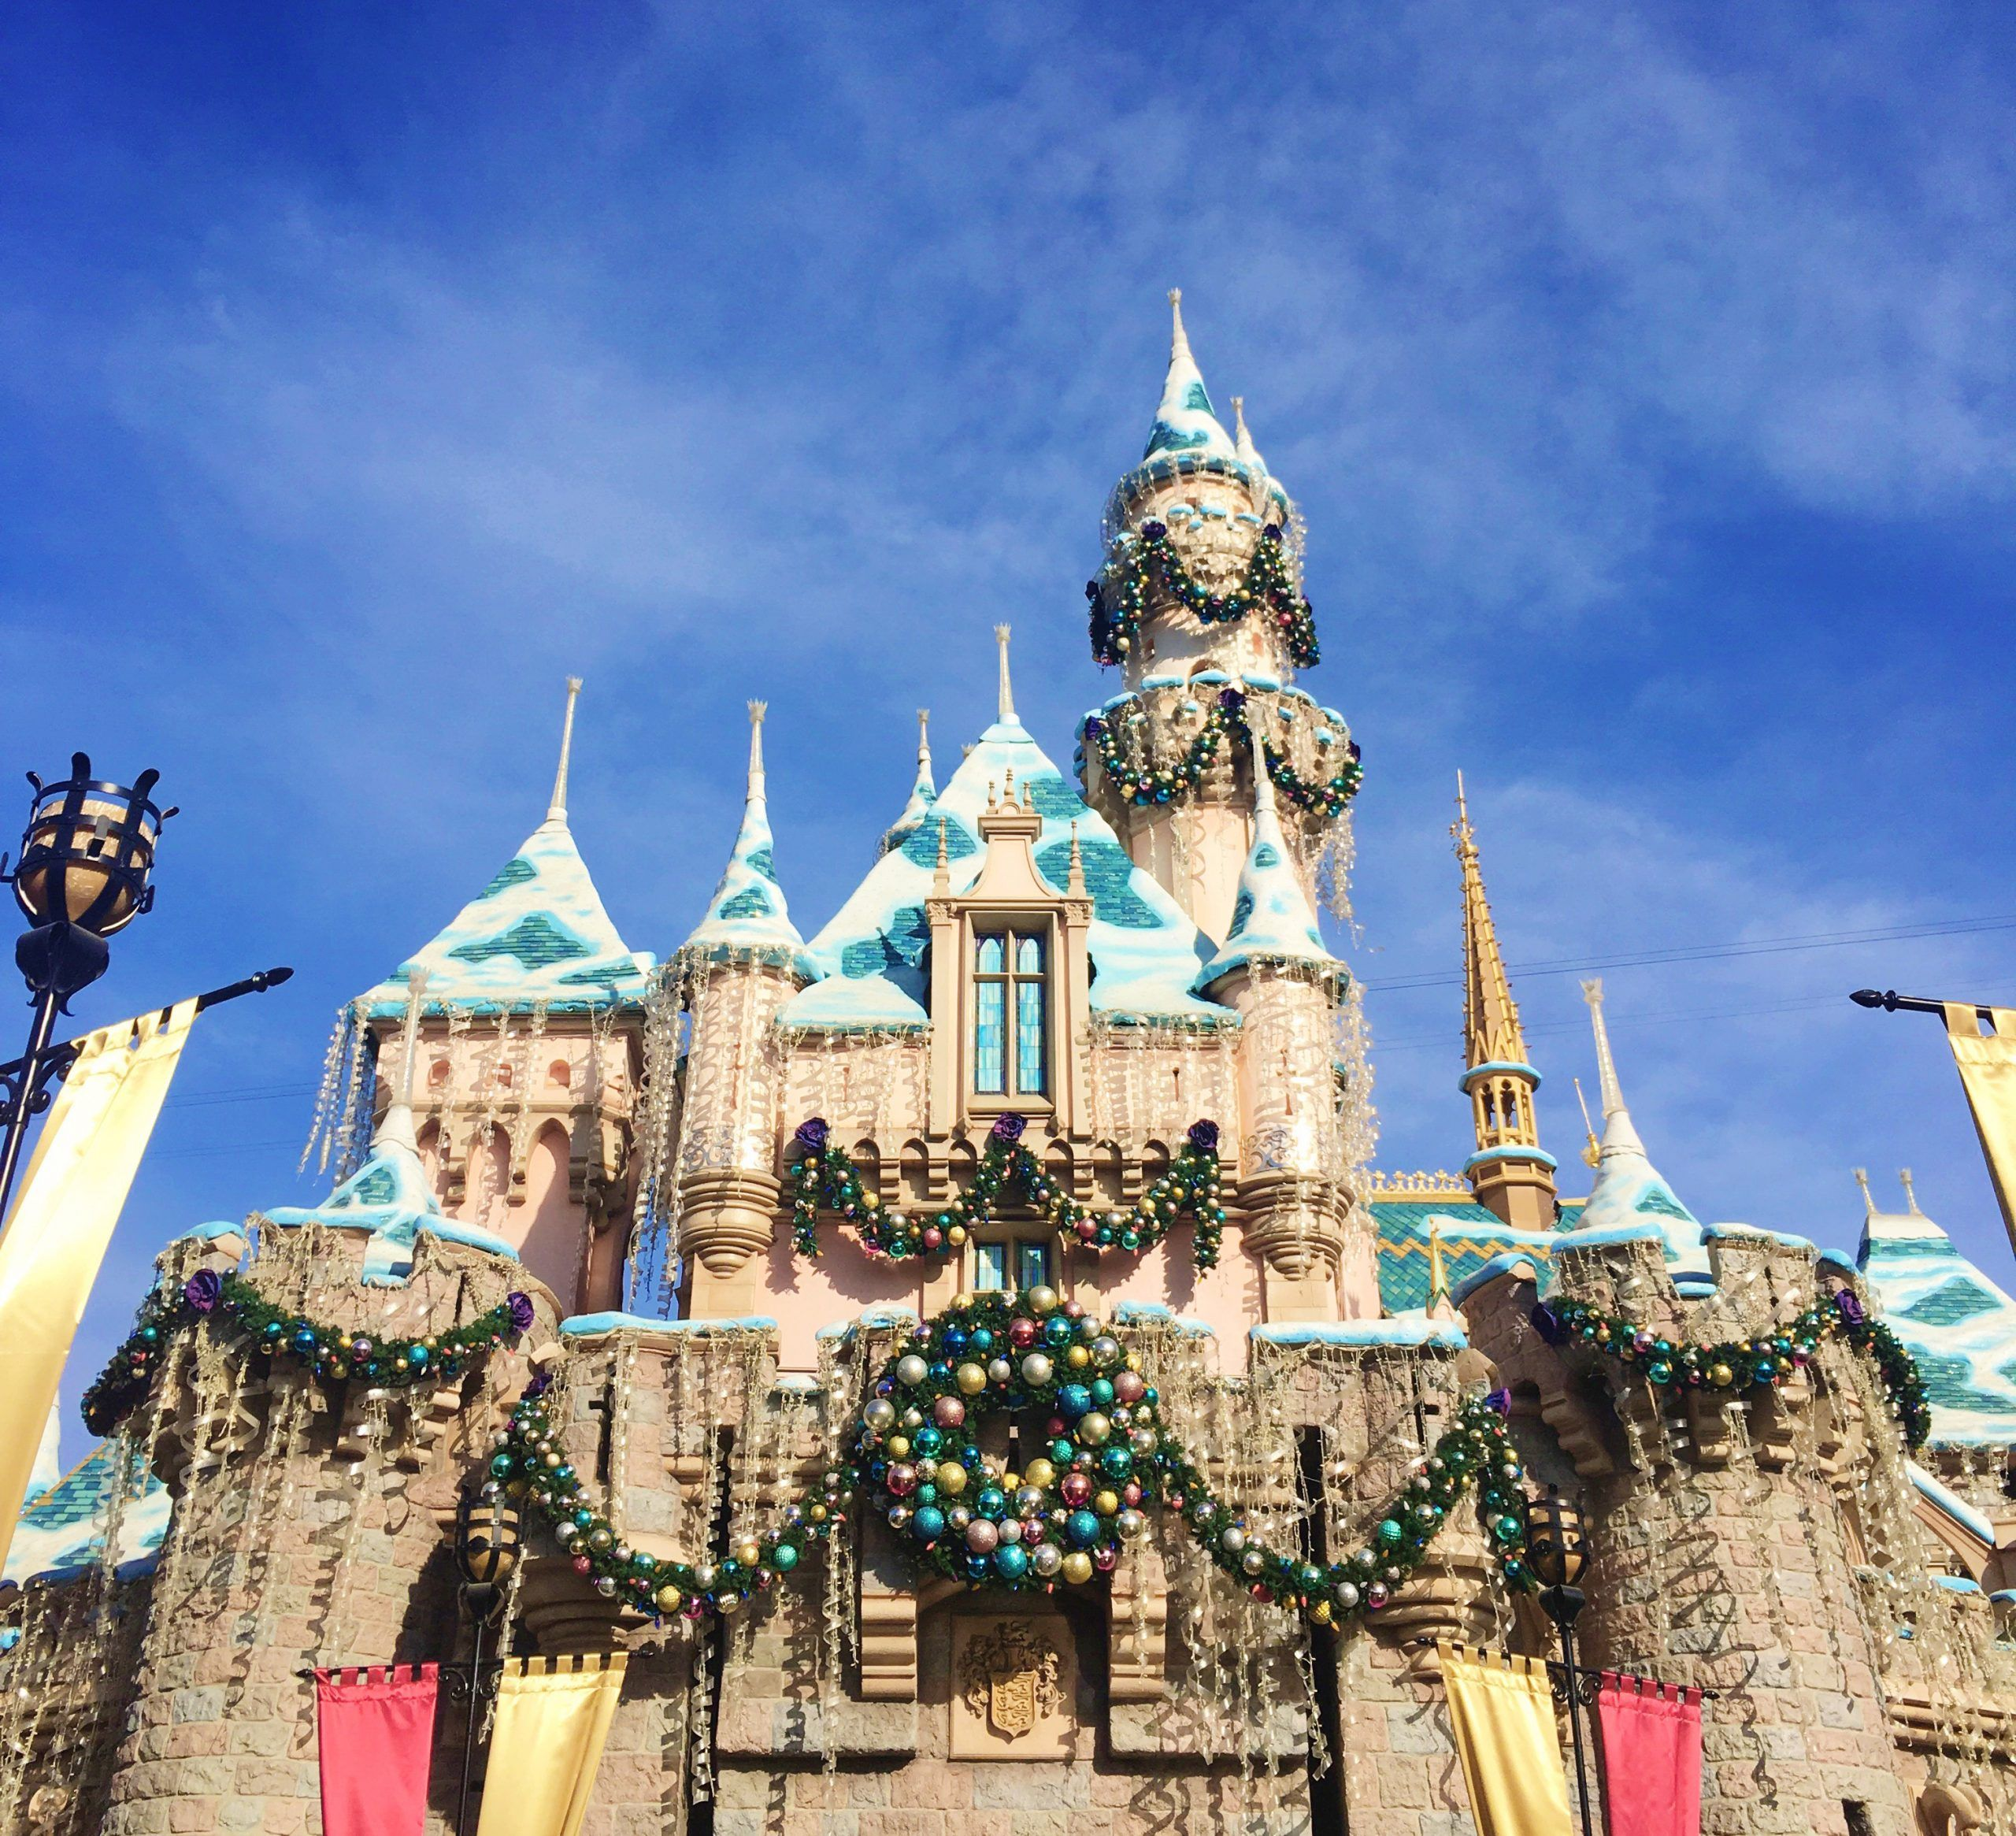 Disneyland During Christmas Time Guide   Disneyland christmas, Disneyland vacation packages